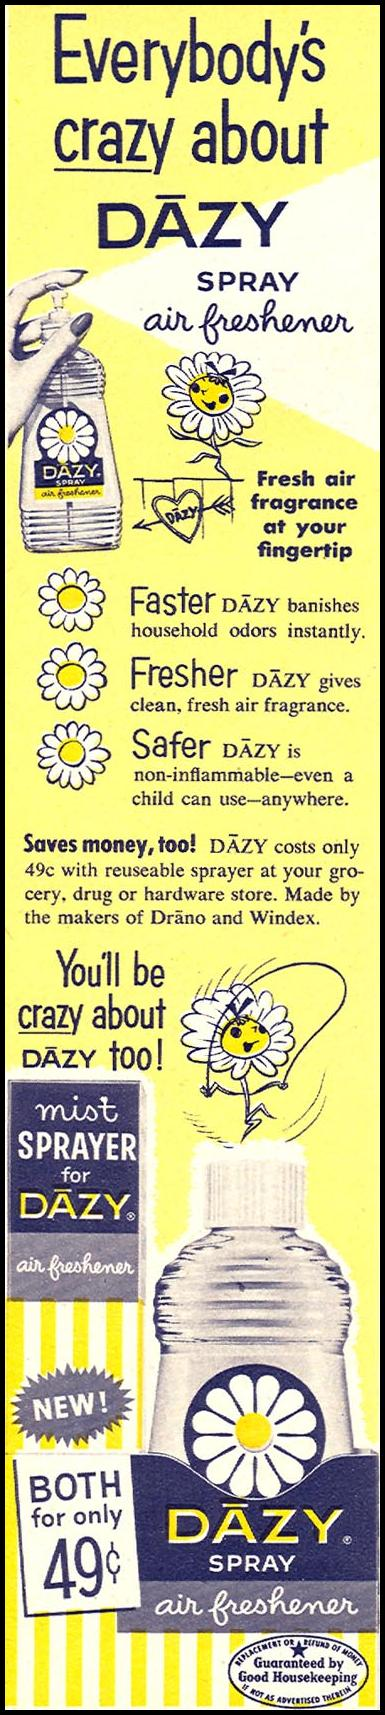 DAZY SPRAY AIR FRESHENER